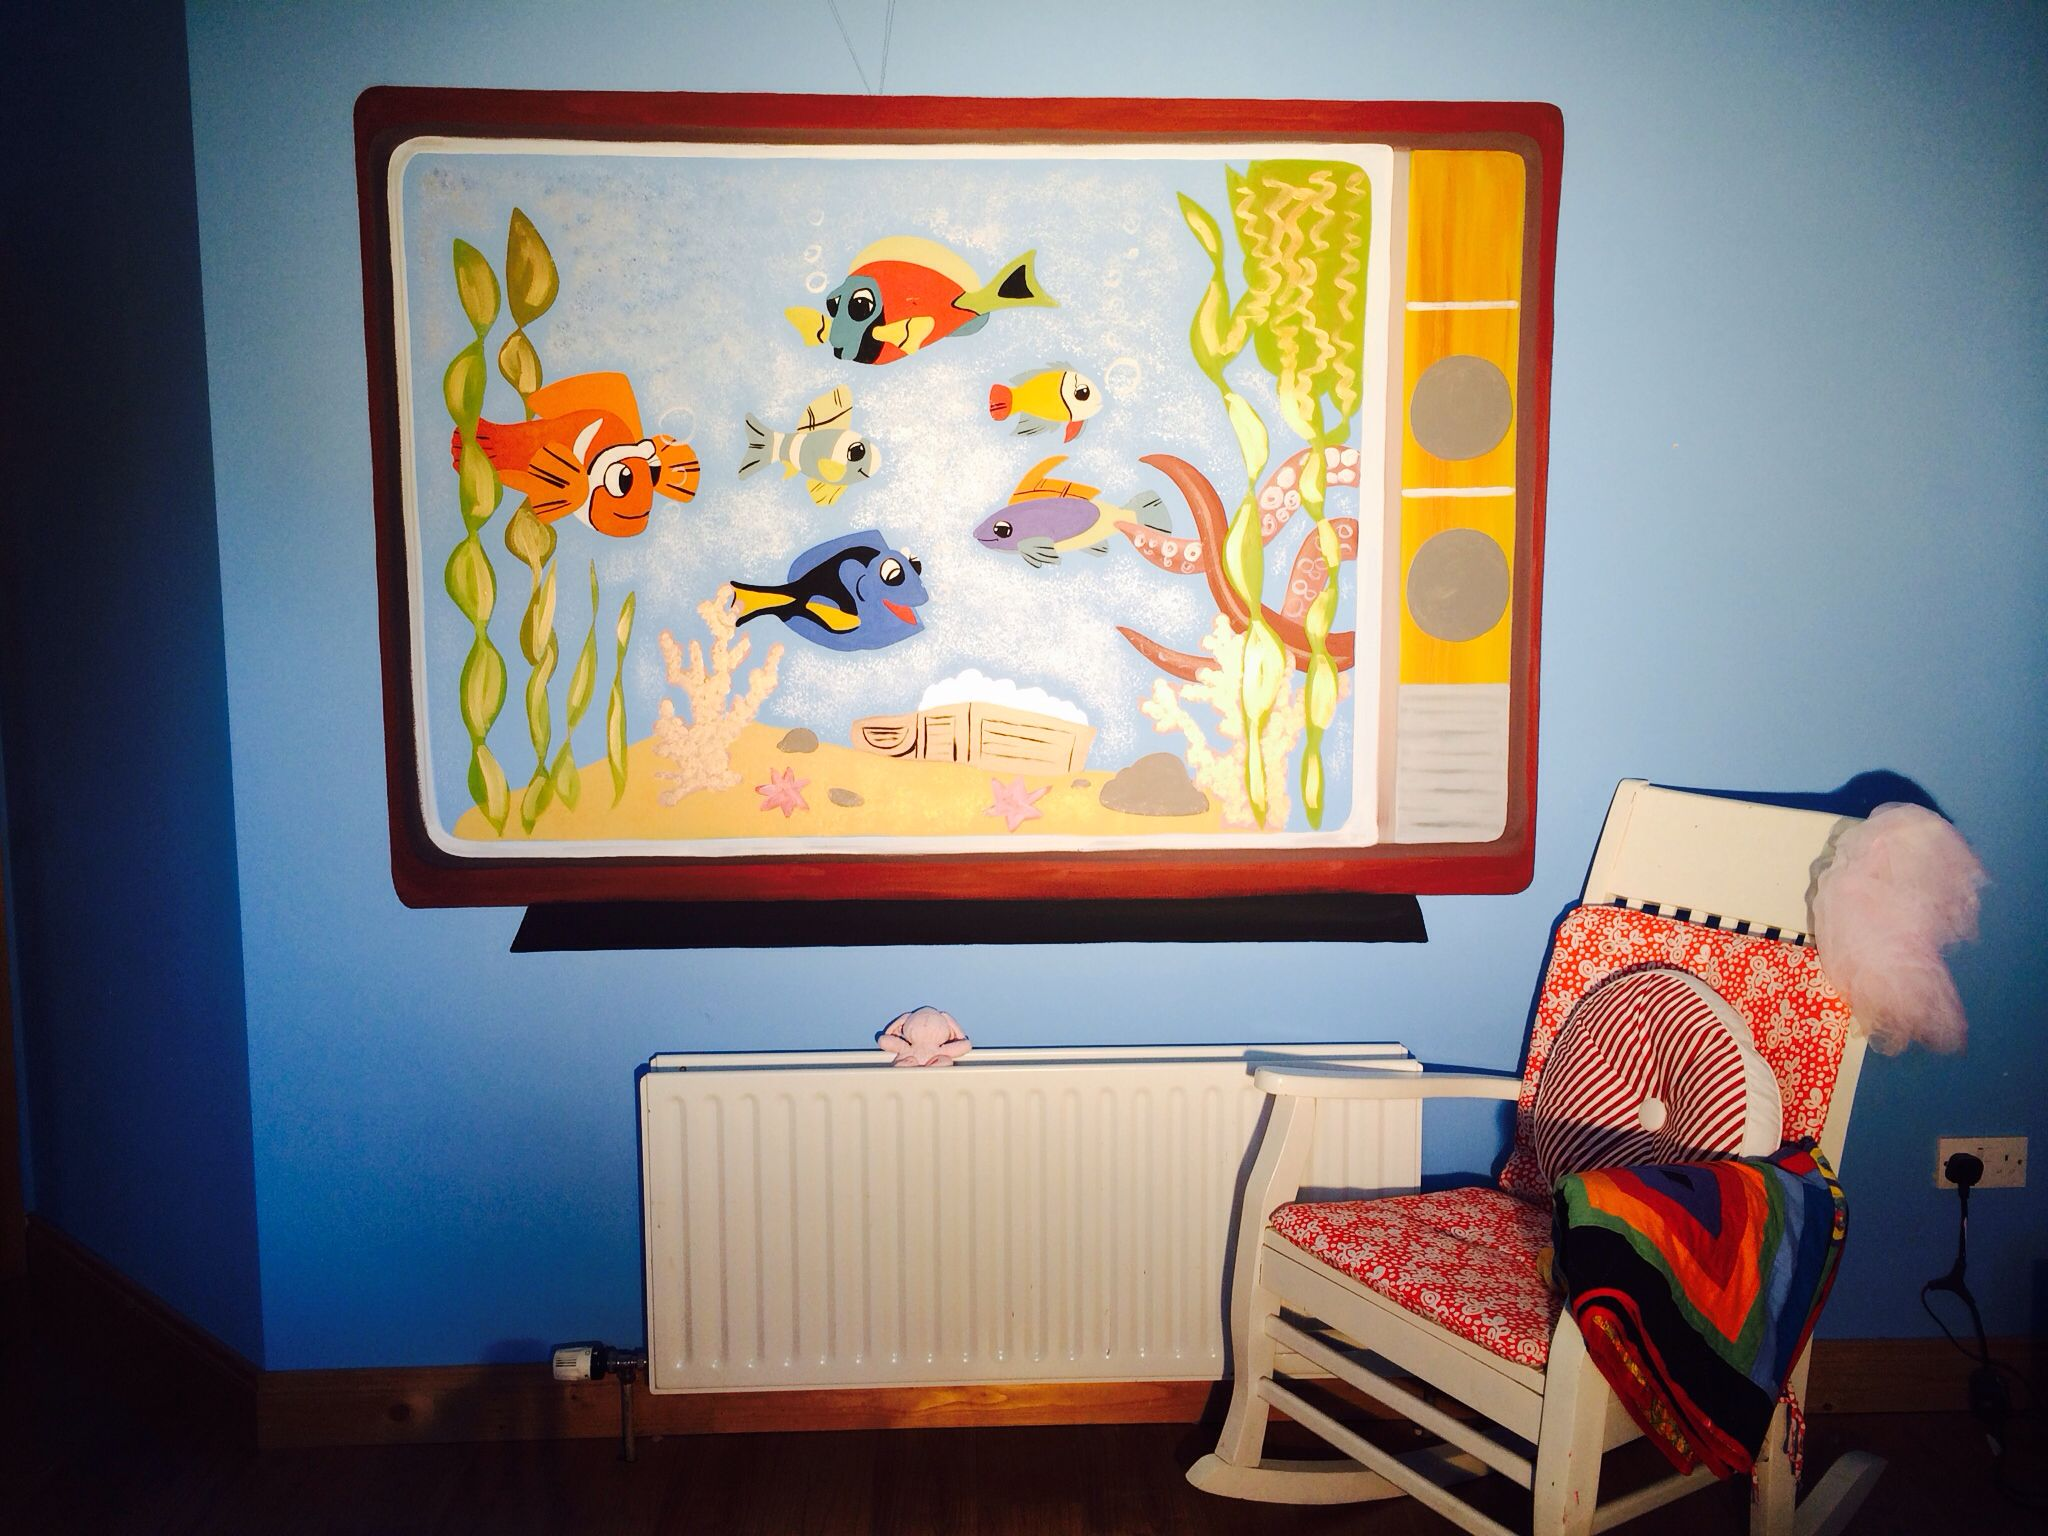 Fish tank painting - Hand Painted Fish Tank Wall Mural In Acrylic